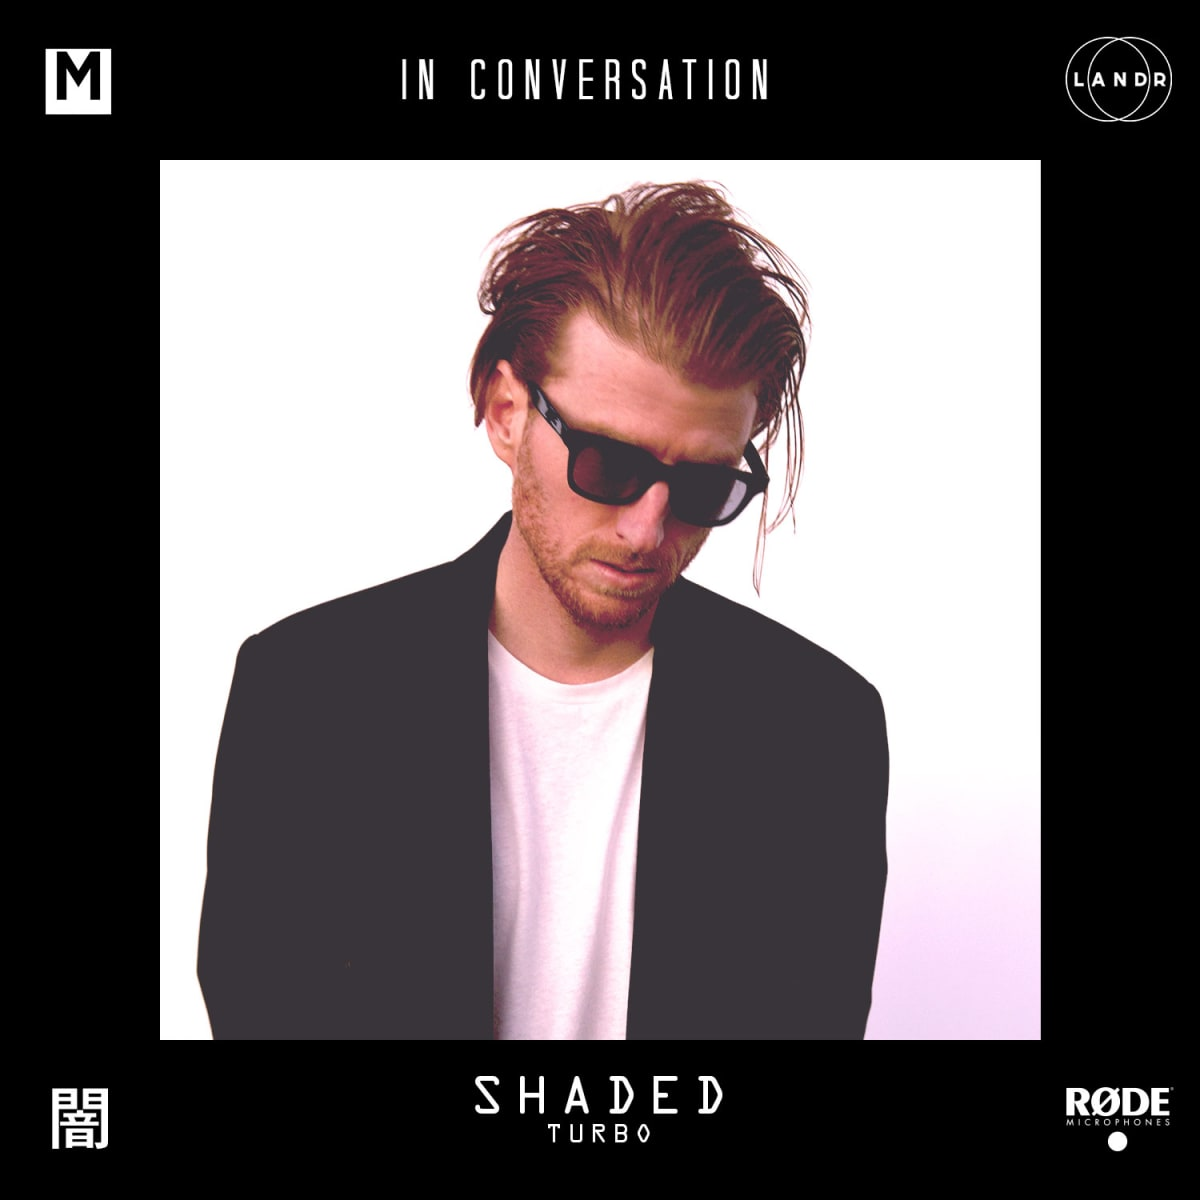 In Conversation: Shaded [Turbo]